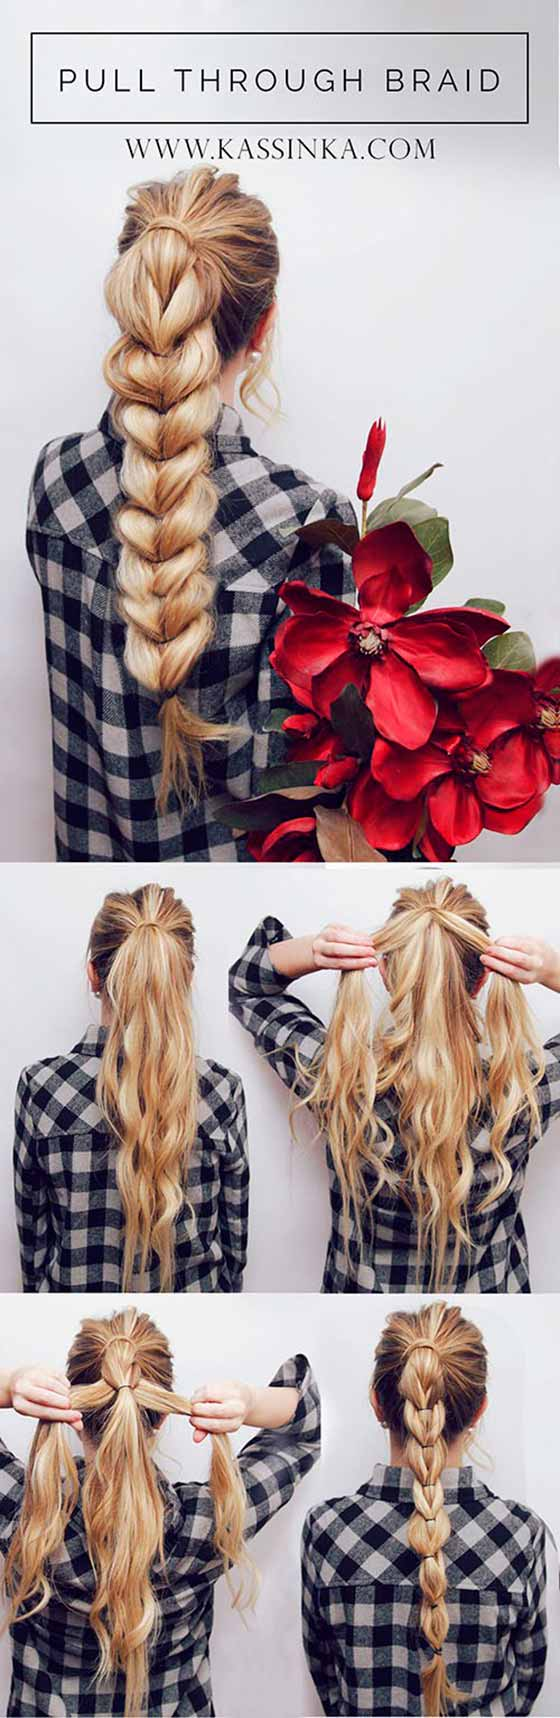 Pull-Through-Braid